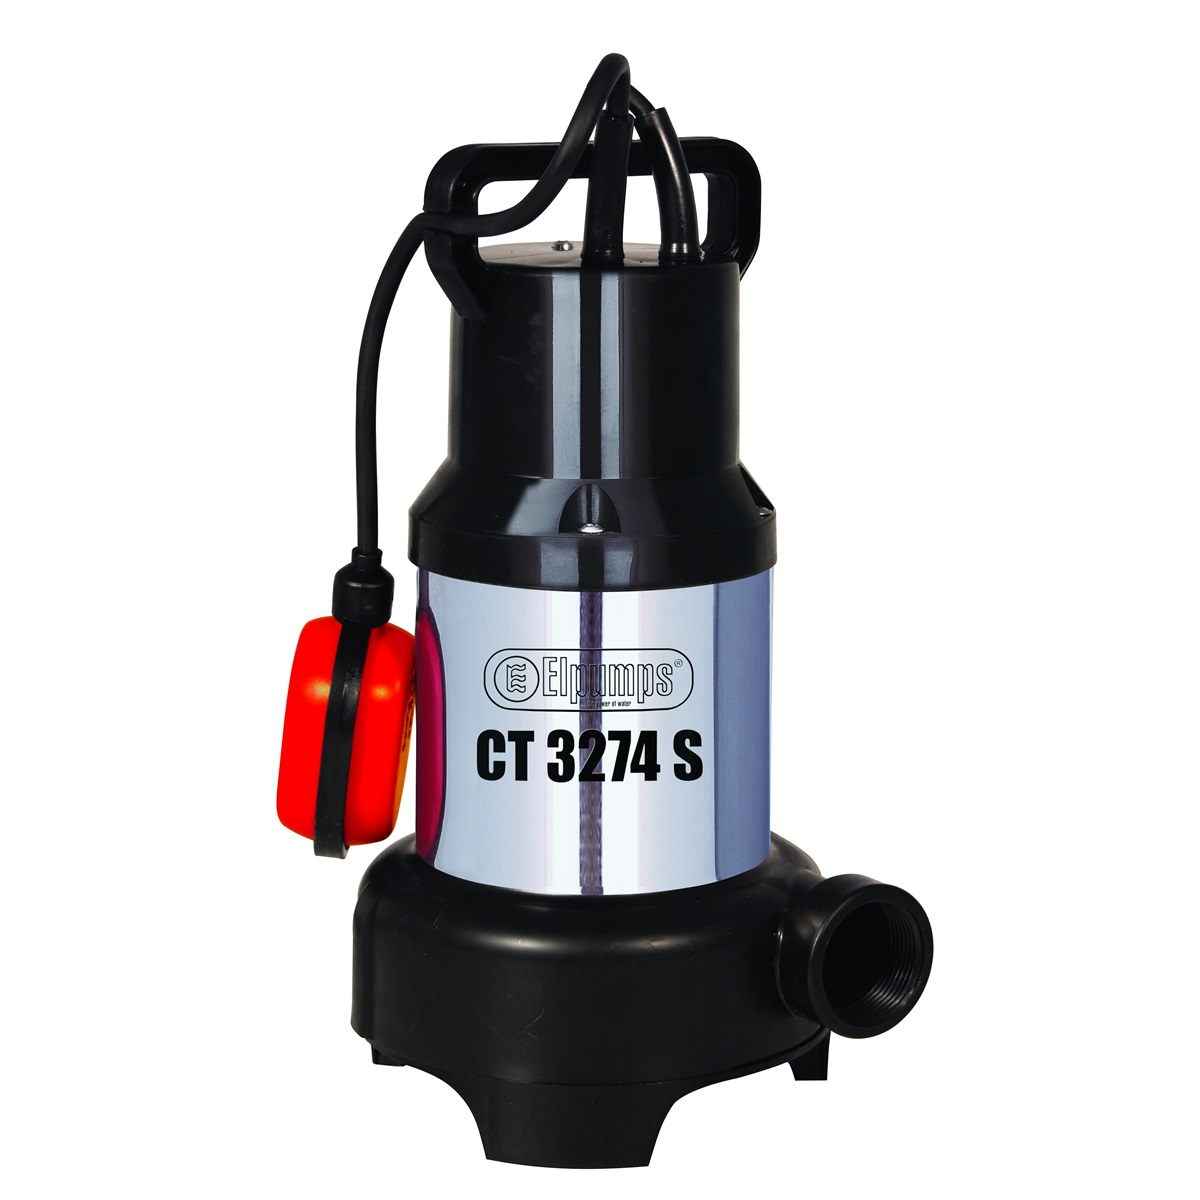 Elpumps CT 3274 S